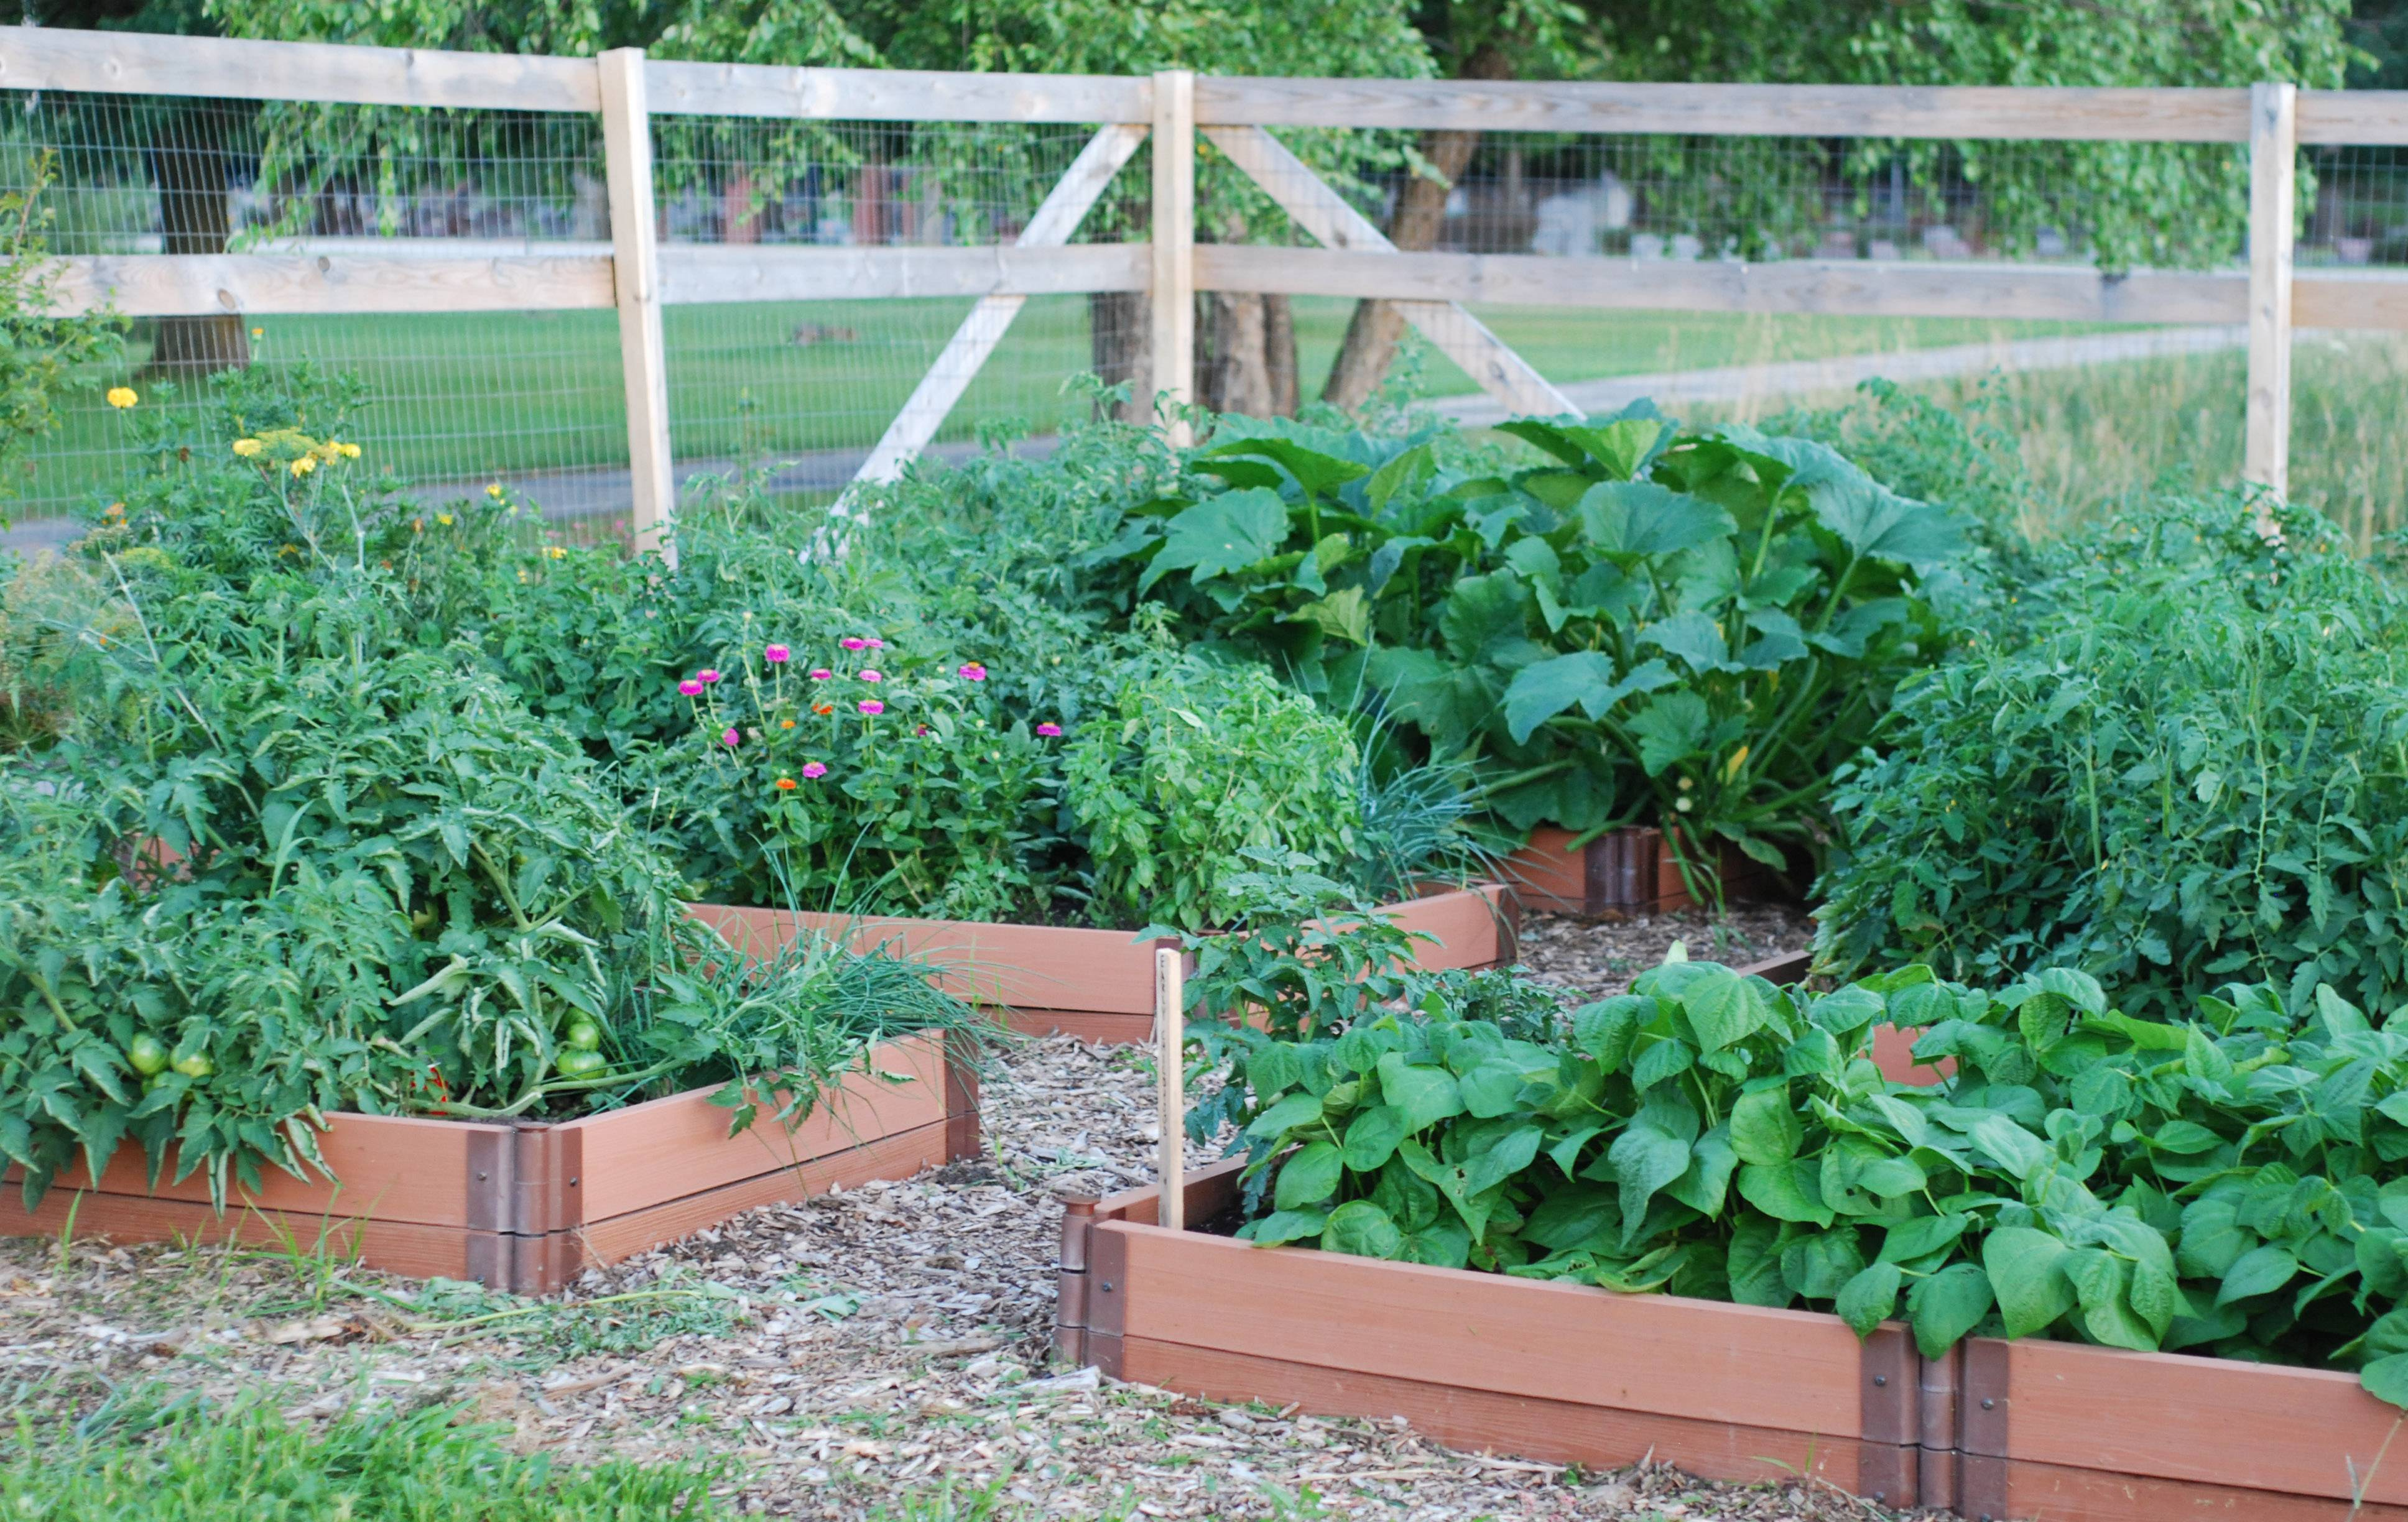 Boxes flourish with flowers and vegetables at the Millburn School and Community Garden project.